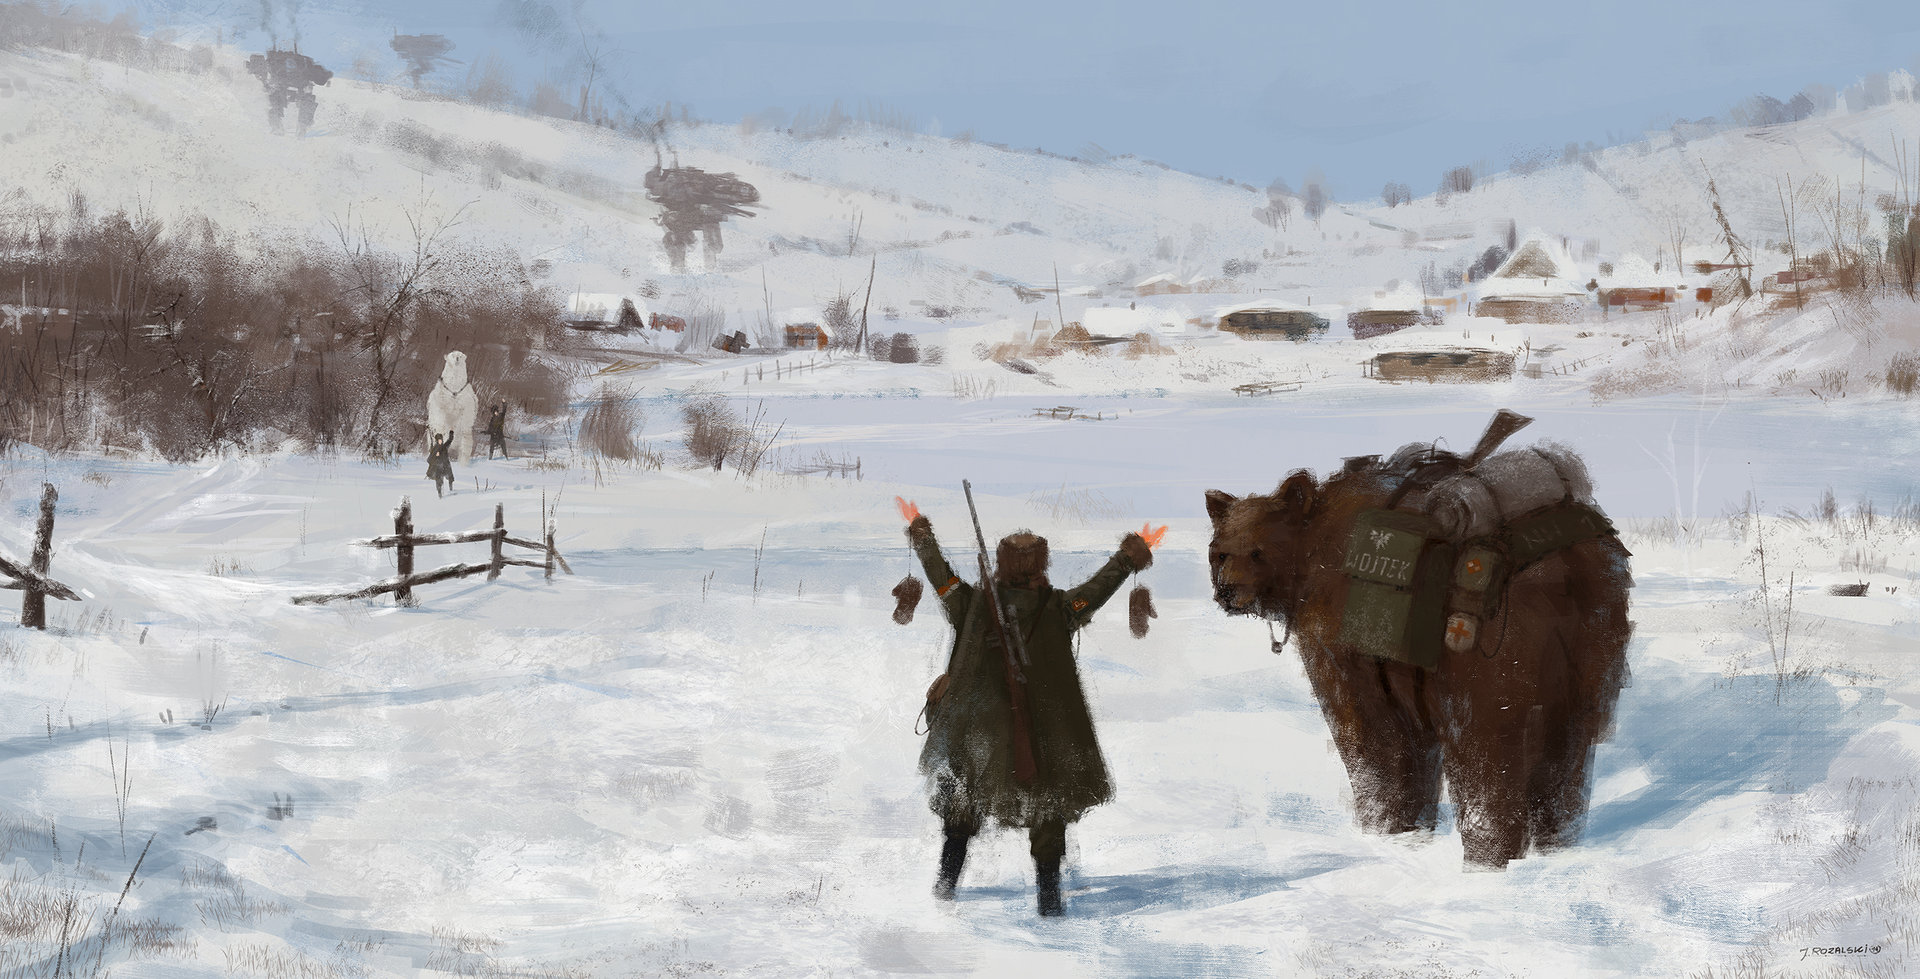 jakub-rozalski-1920-going-homesmall